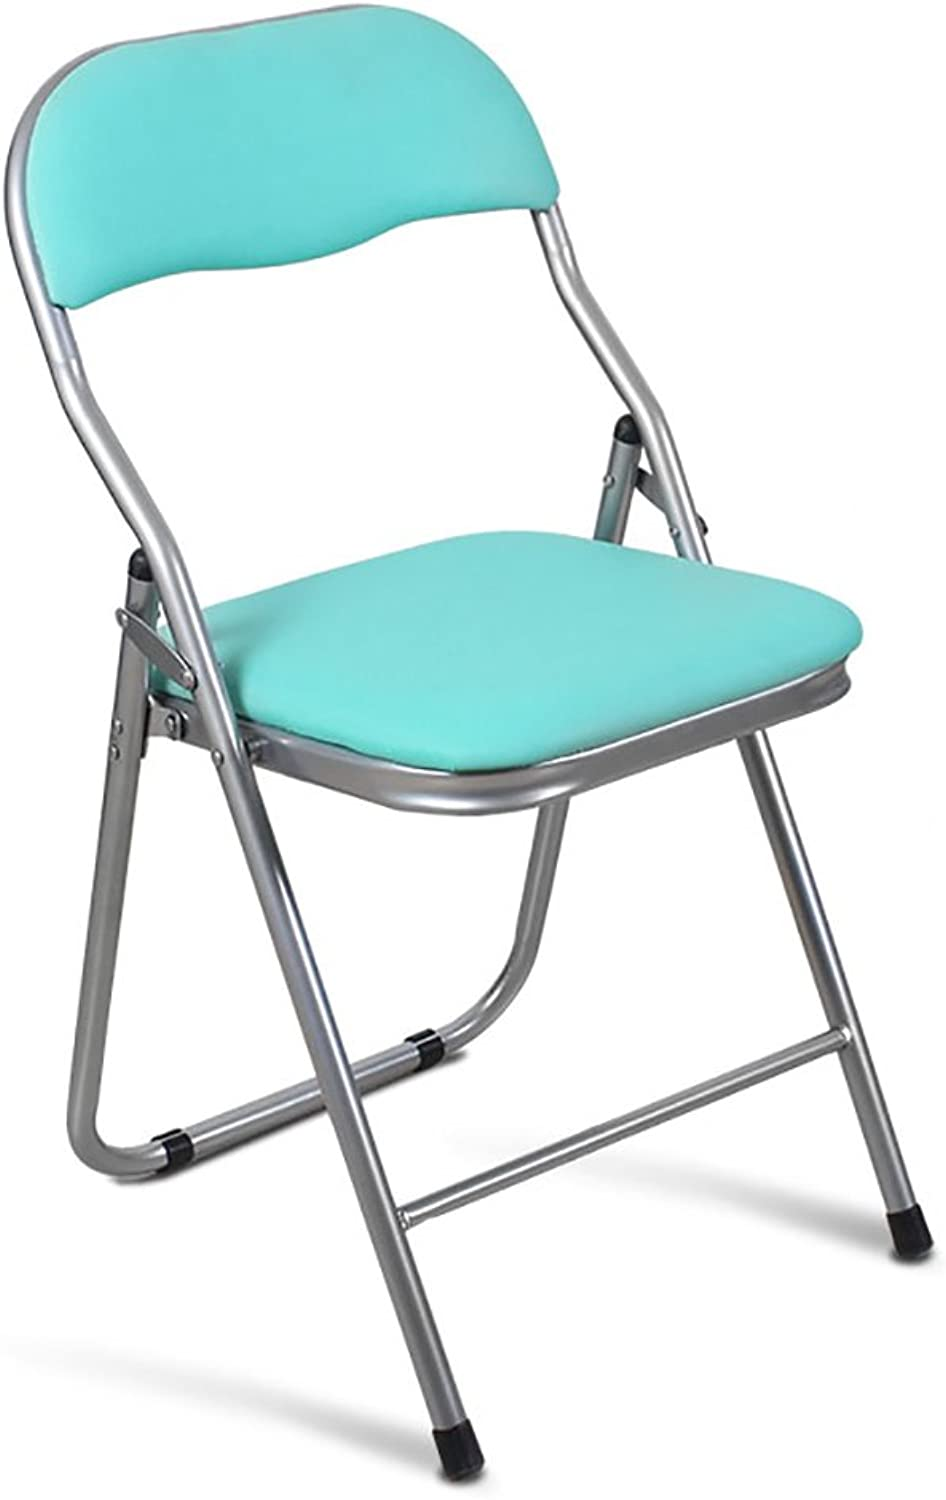 Folding Chair Folding Chairs Office Folding Chairs Conference Training Chairs Simple Computer Chairs Dining Chairs Back Chairs (color   Green)